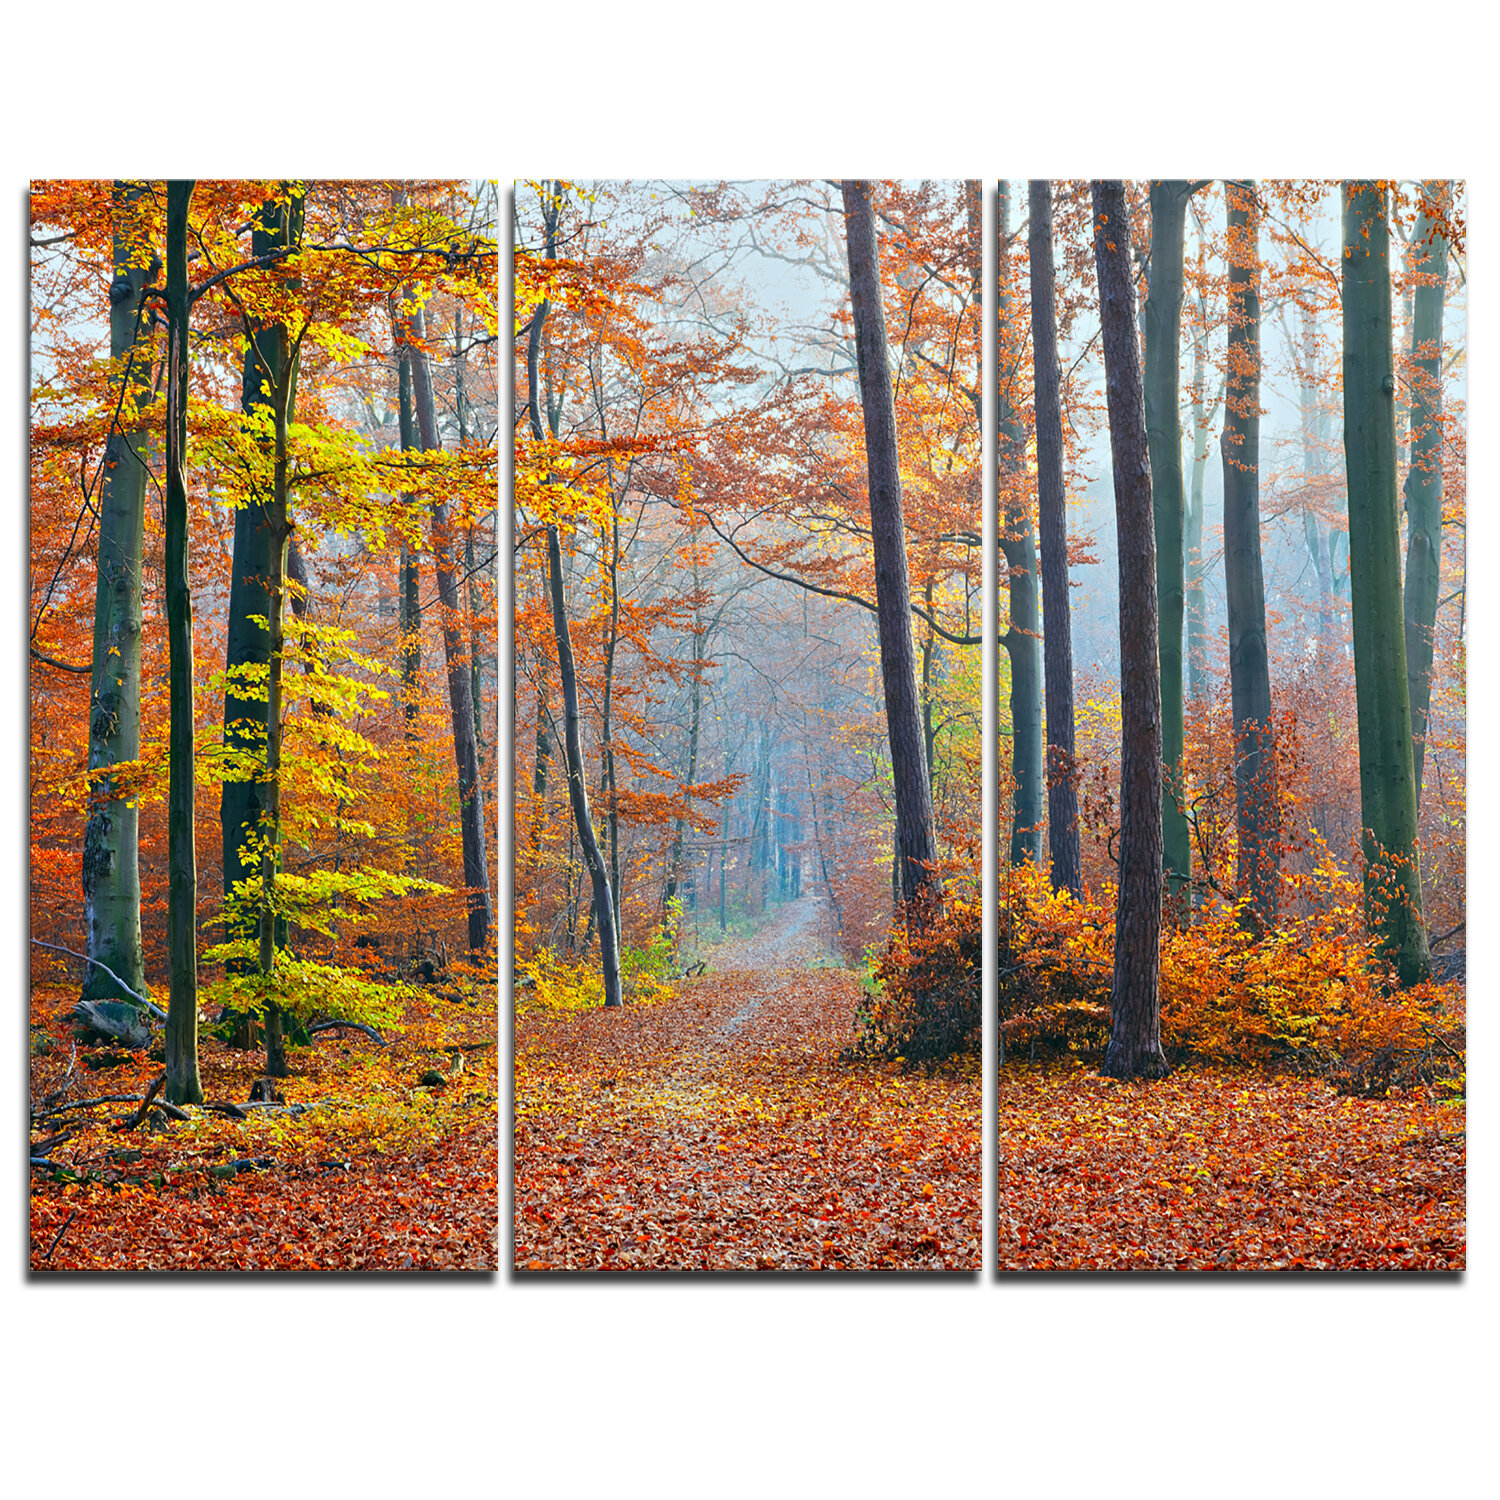 Designart Orange Green Fall Leaves In Forest 3 Piece Graphic Art On Wrapped Canvas Set Wayfair